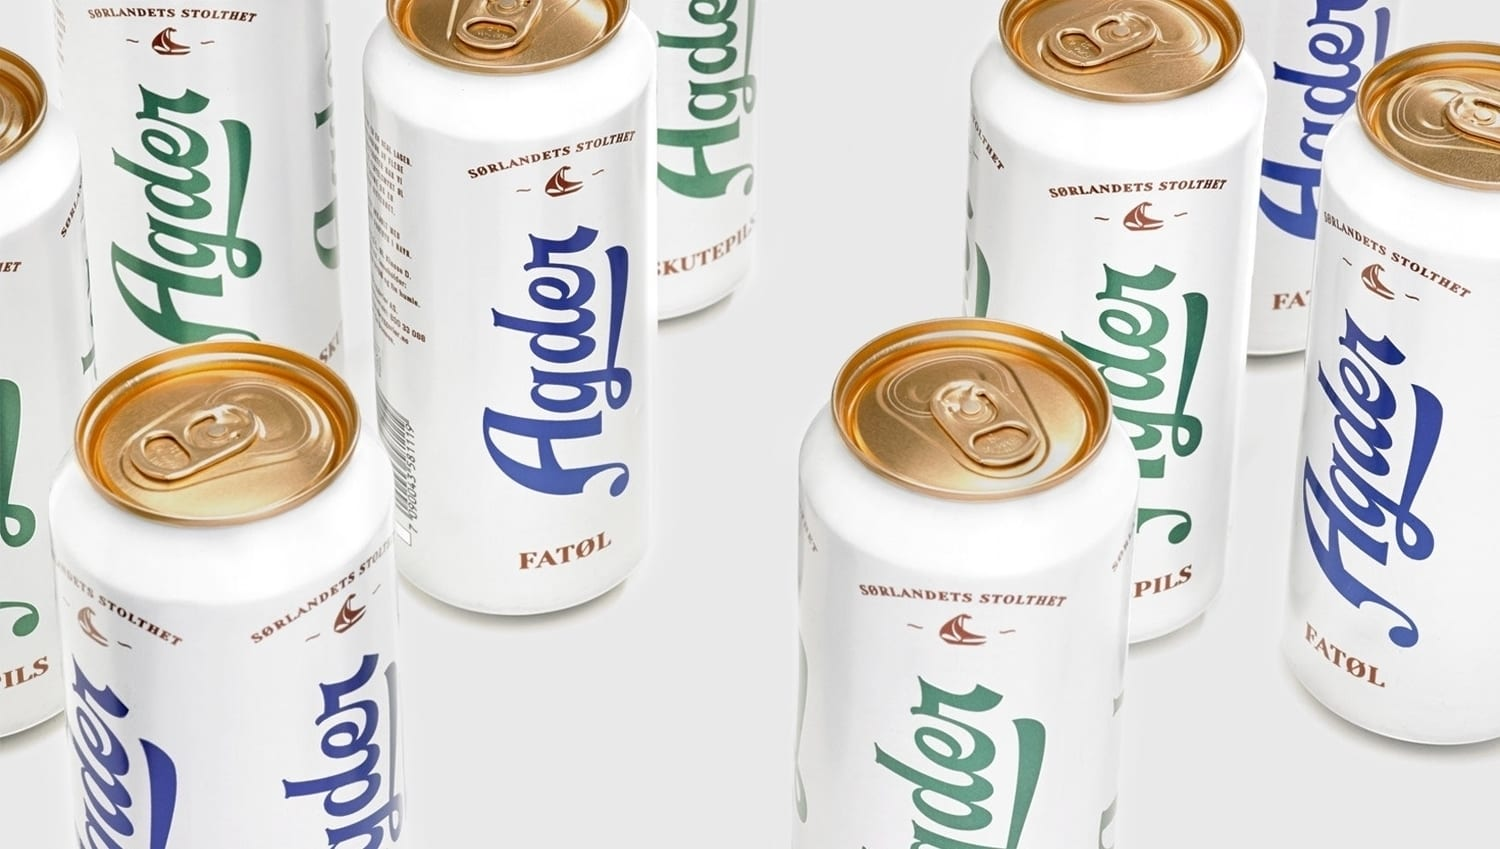 04 Agder Bryggeri Local Beer Branding Packaging Frank Norway BPO - Ach, tie obaly – Agder Bryggeri by Frank